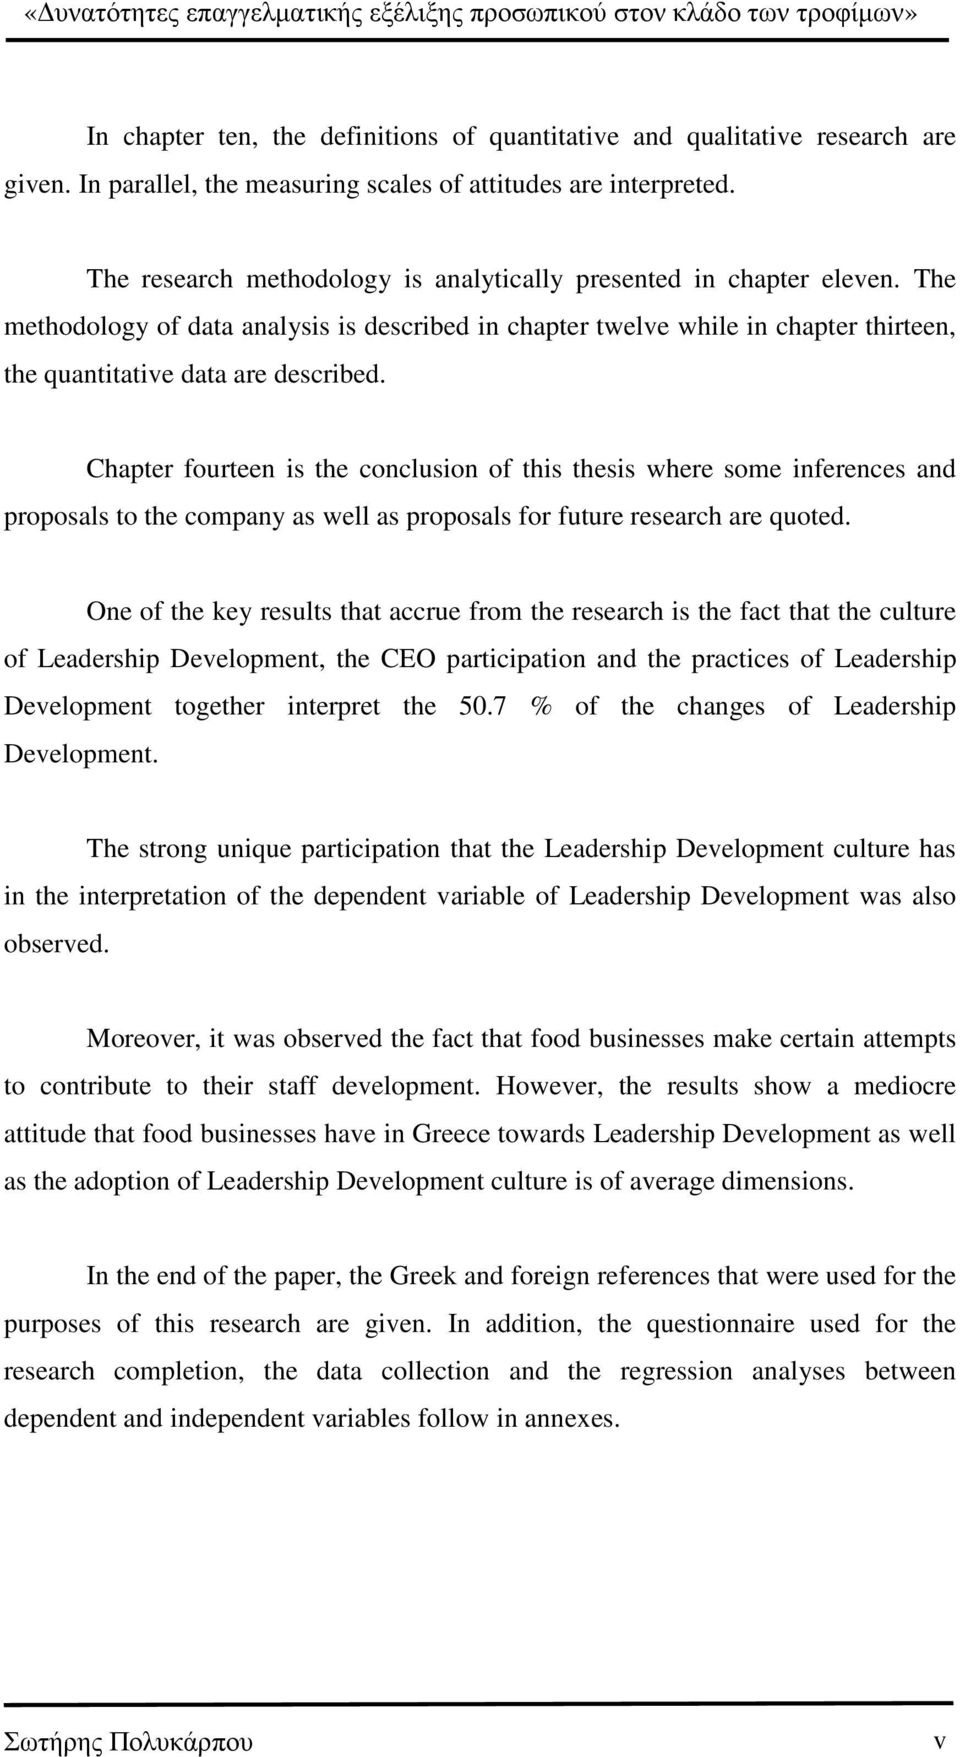 Chapter fourteen is the conclusion of this thesis where some inferences and proposals to the company as well as proposals for future research are quoted.